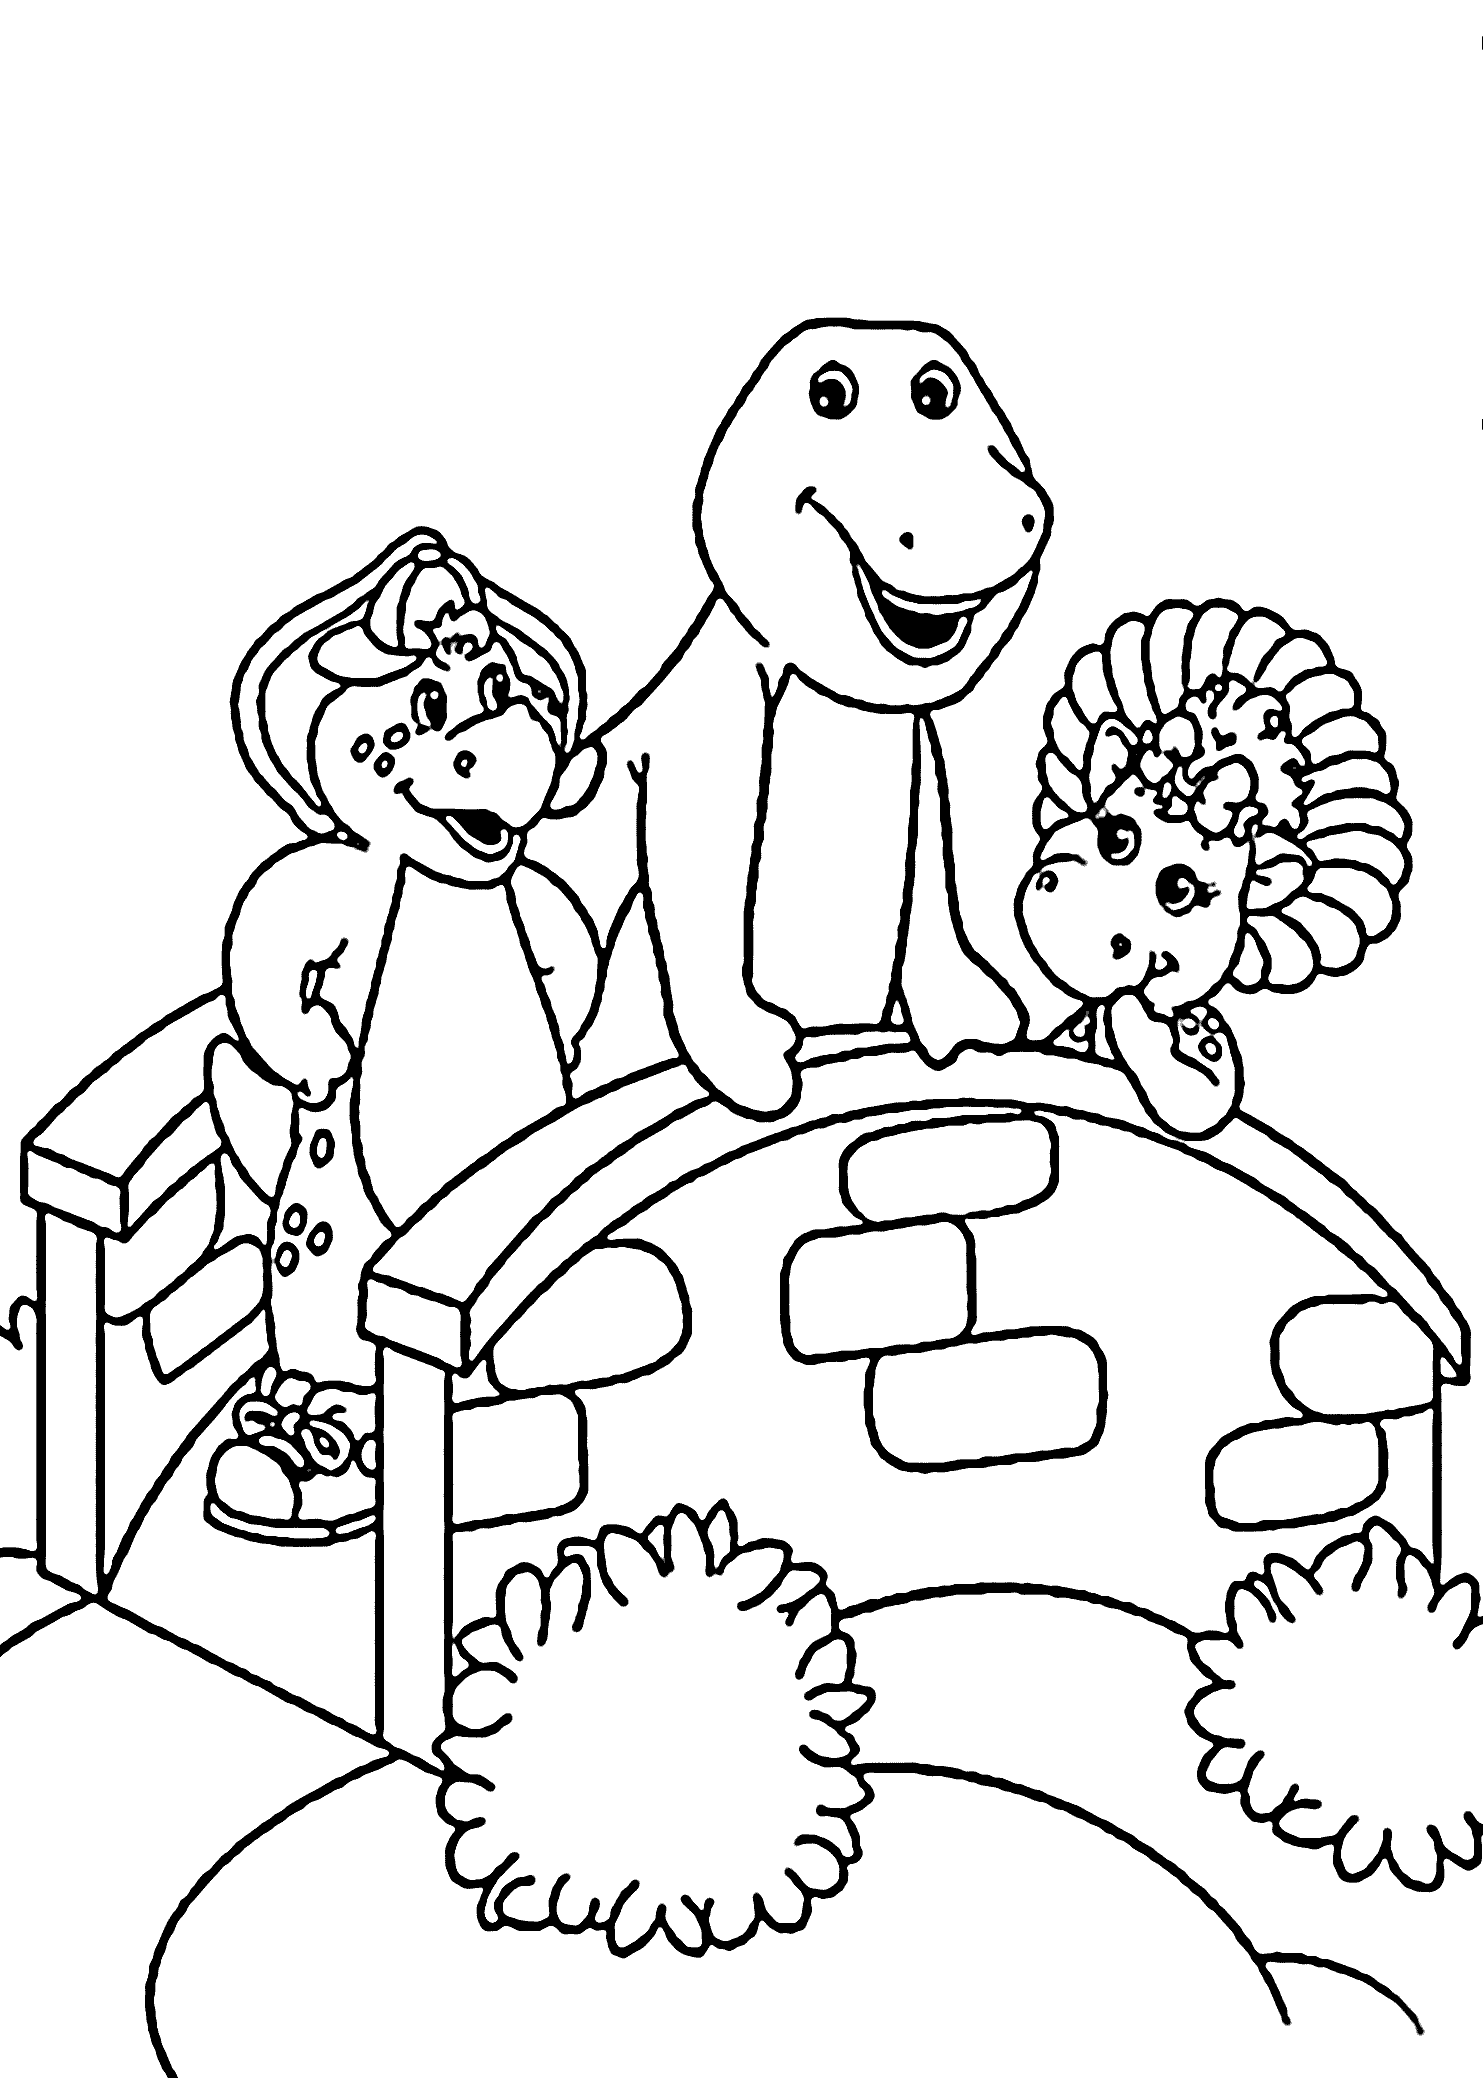 Barney Standing On The Bridge Coloring Pages For Kids Cqw Printable Barney Coloring P Dinosaur Coloring Pages Halloween Coloring Pages Pirate Coloring Pages